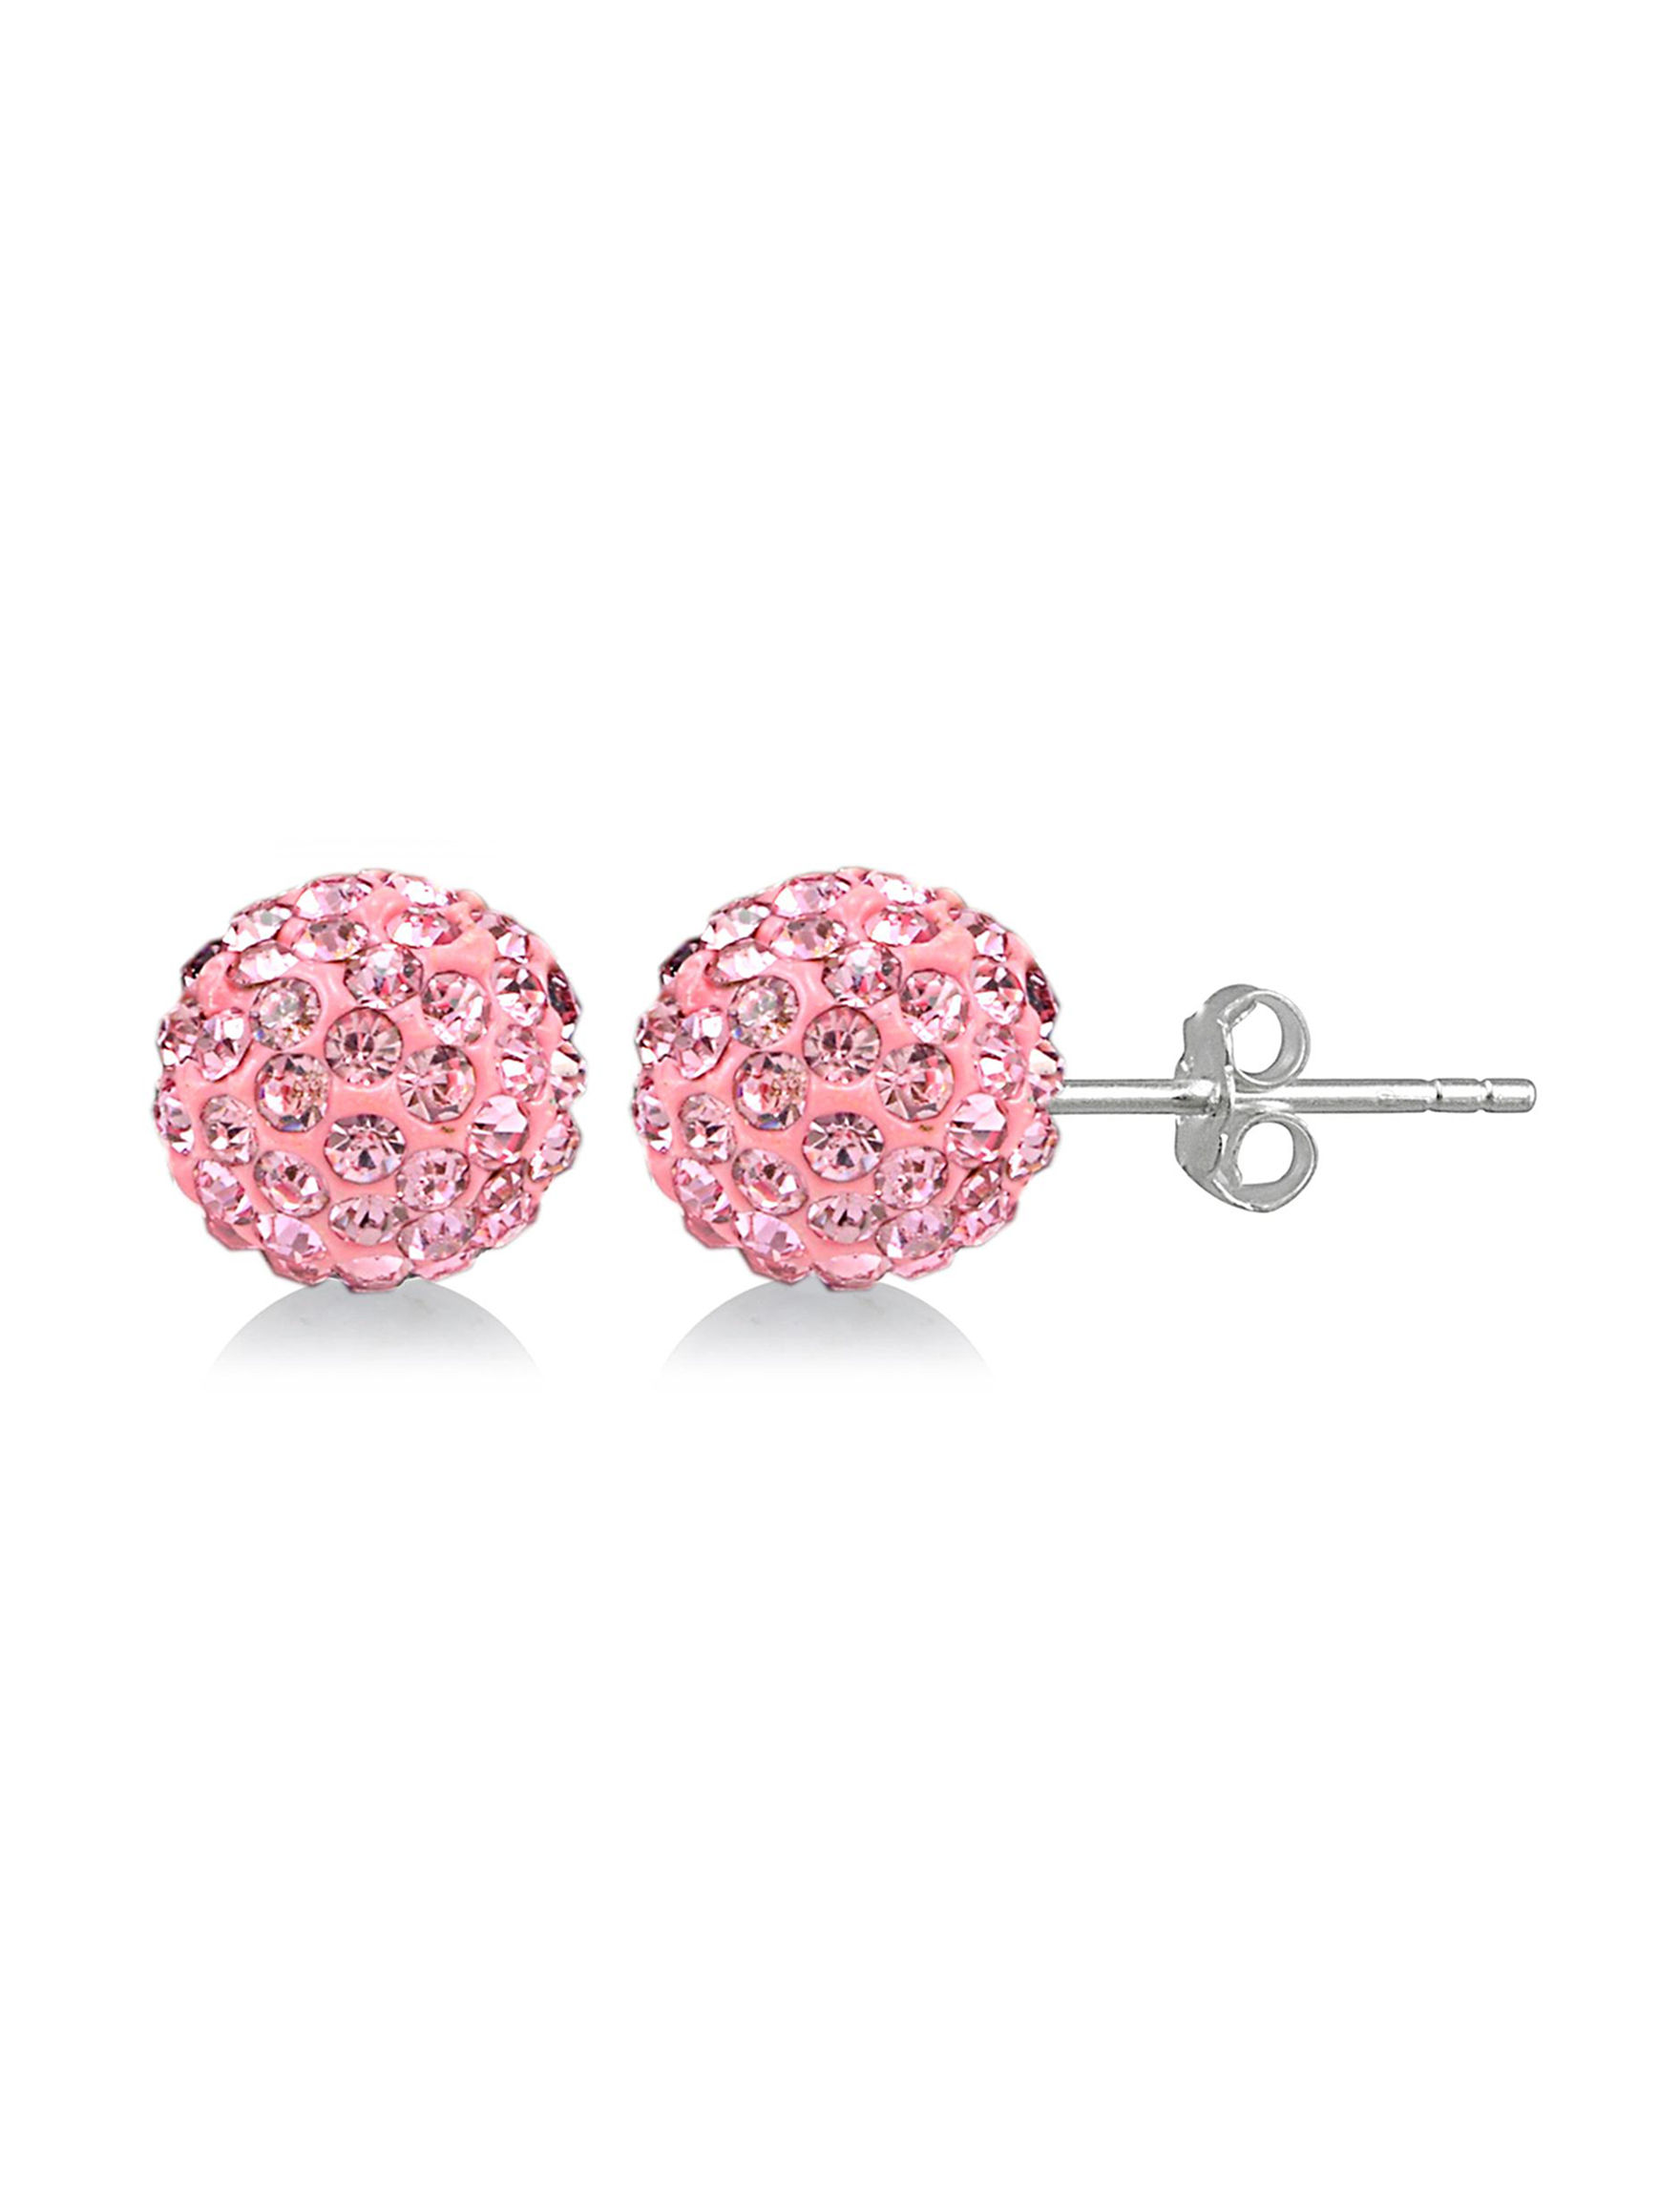 FMC Pink Earrings Fine Jewelry